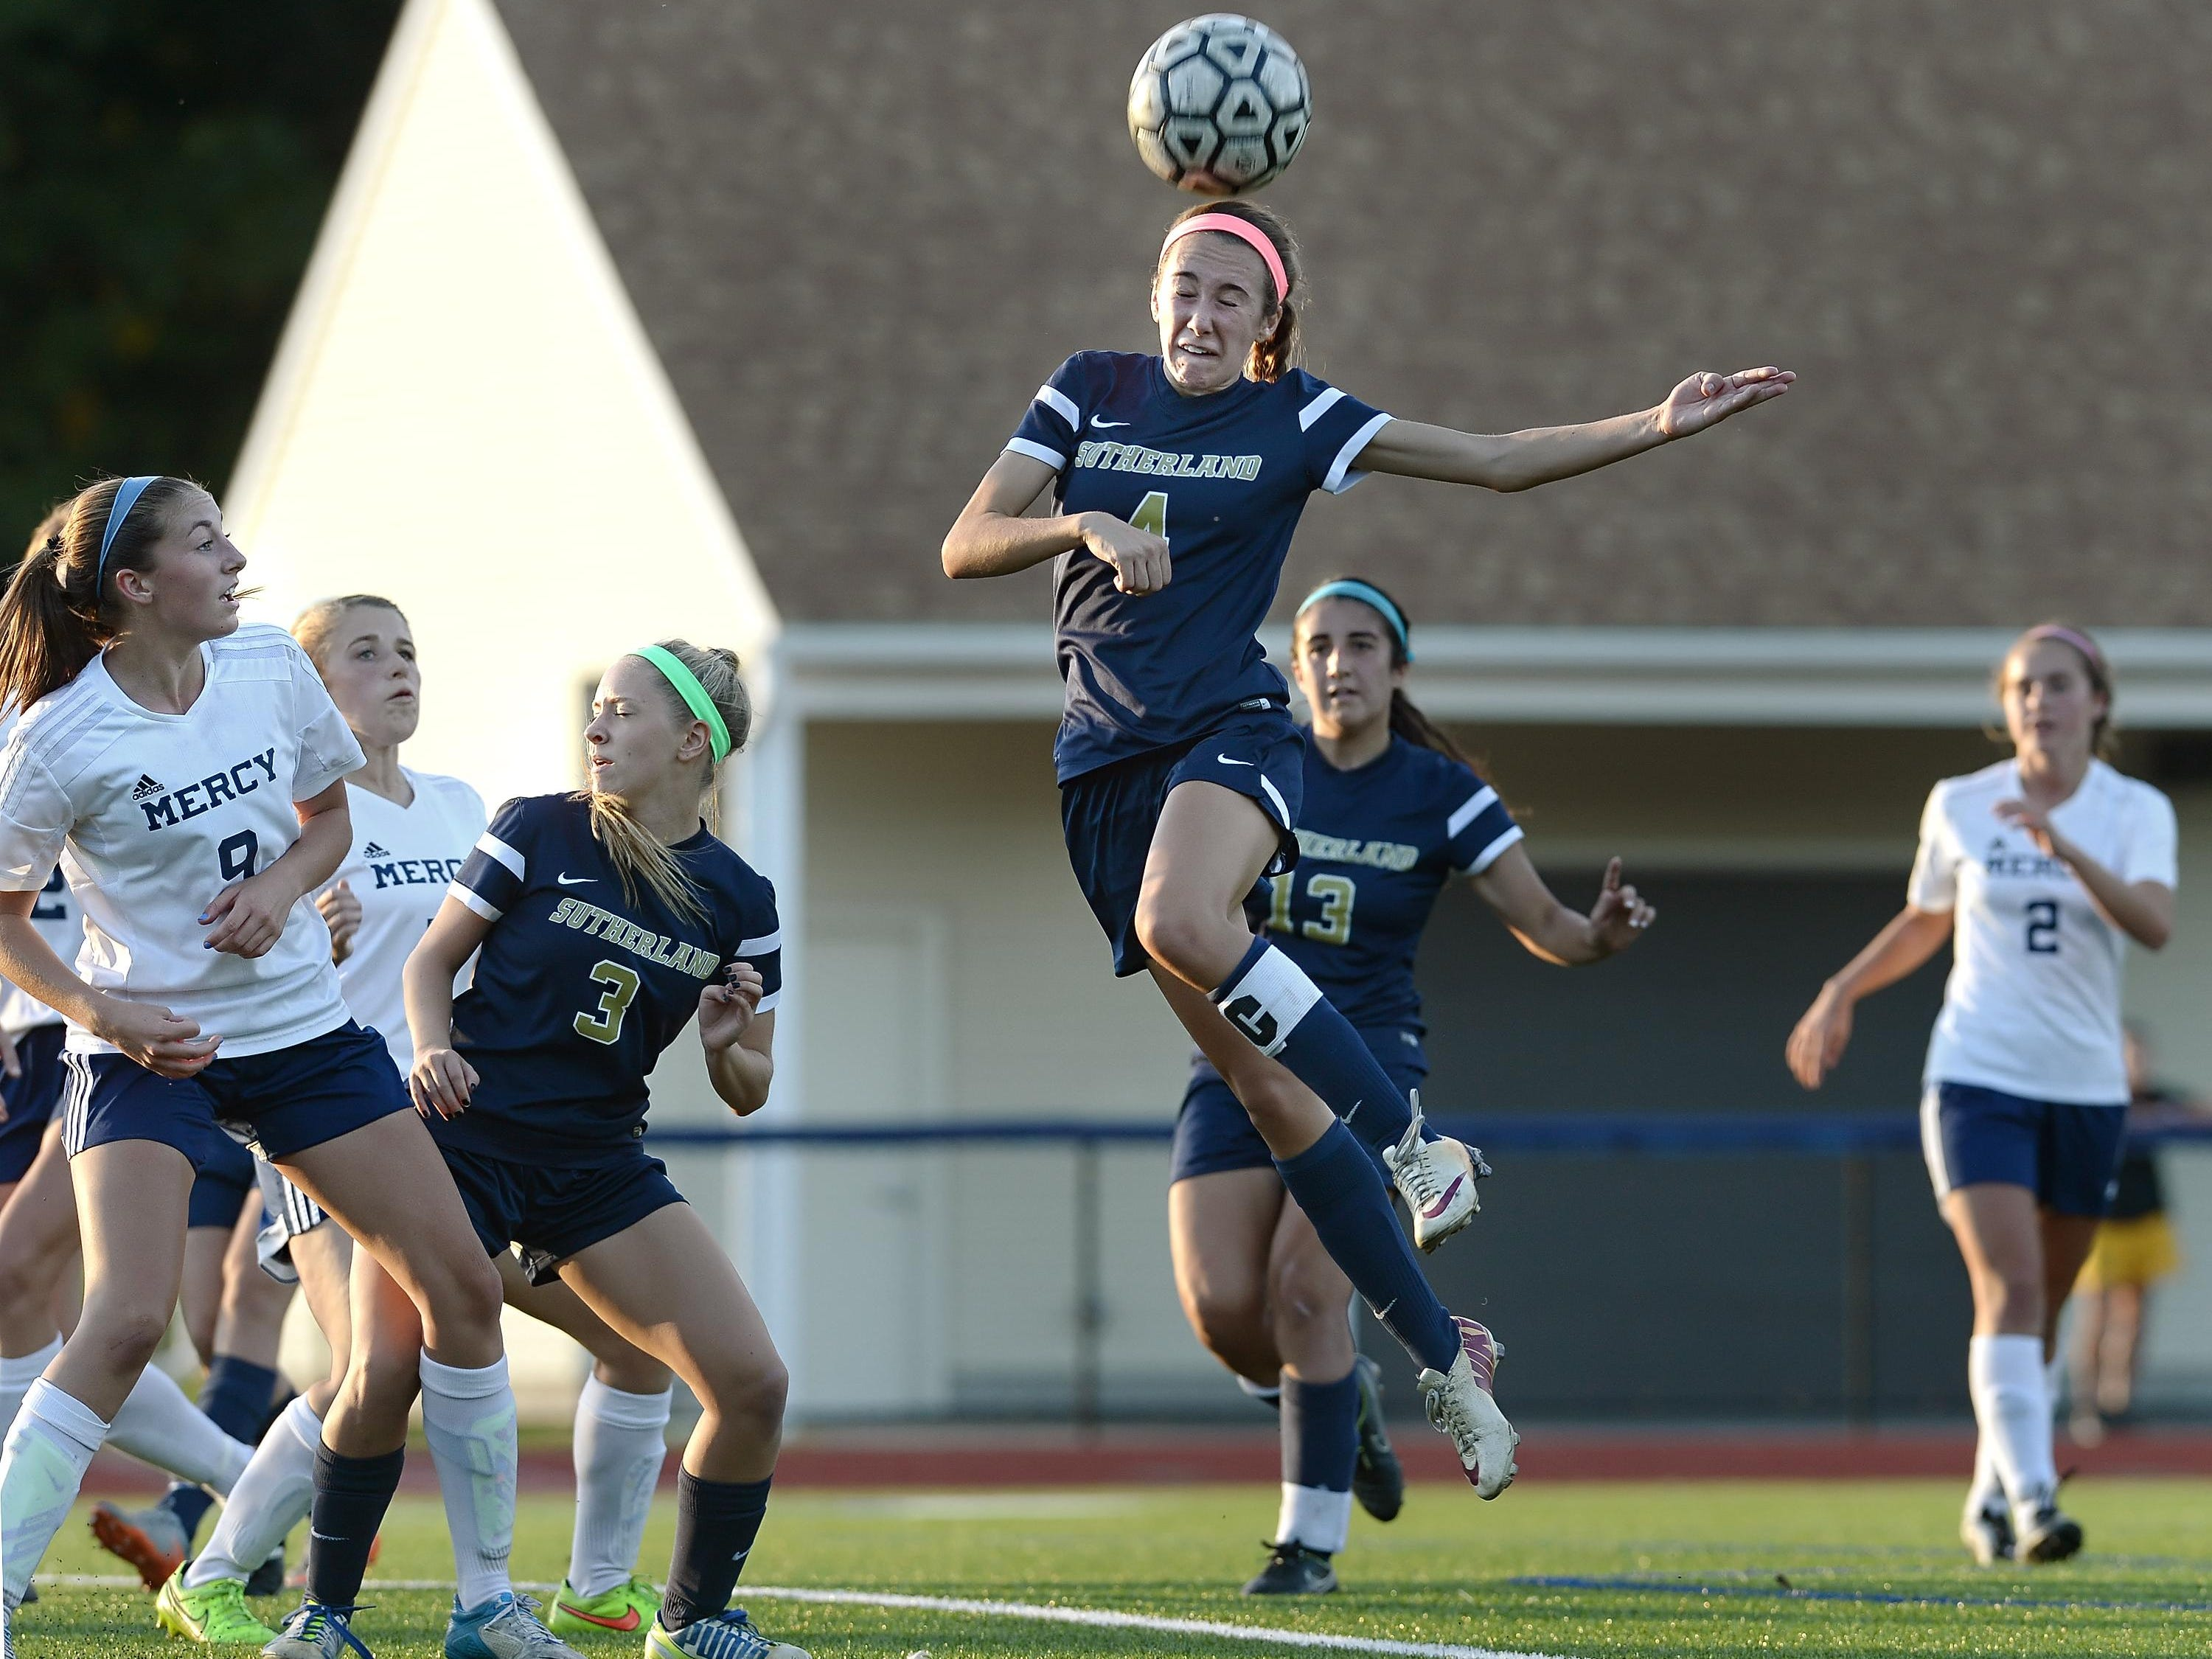 Pittsford Sutherland's Grace Dunnigan, center, reaches for a header on a corner kick.